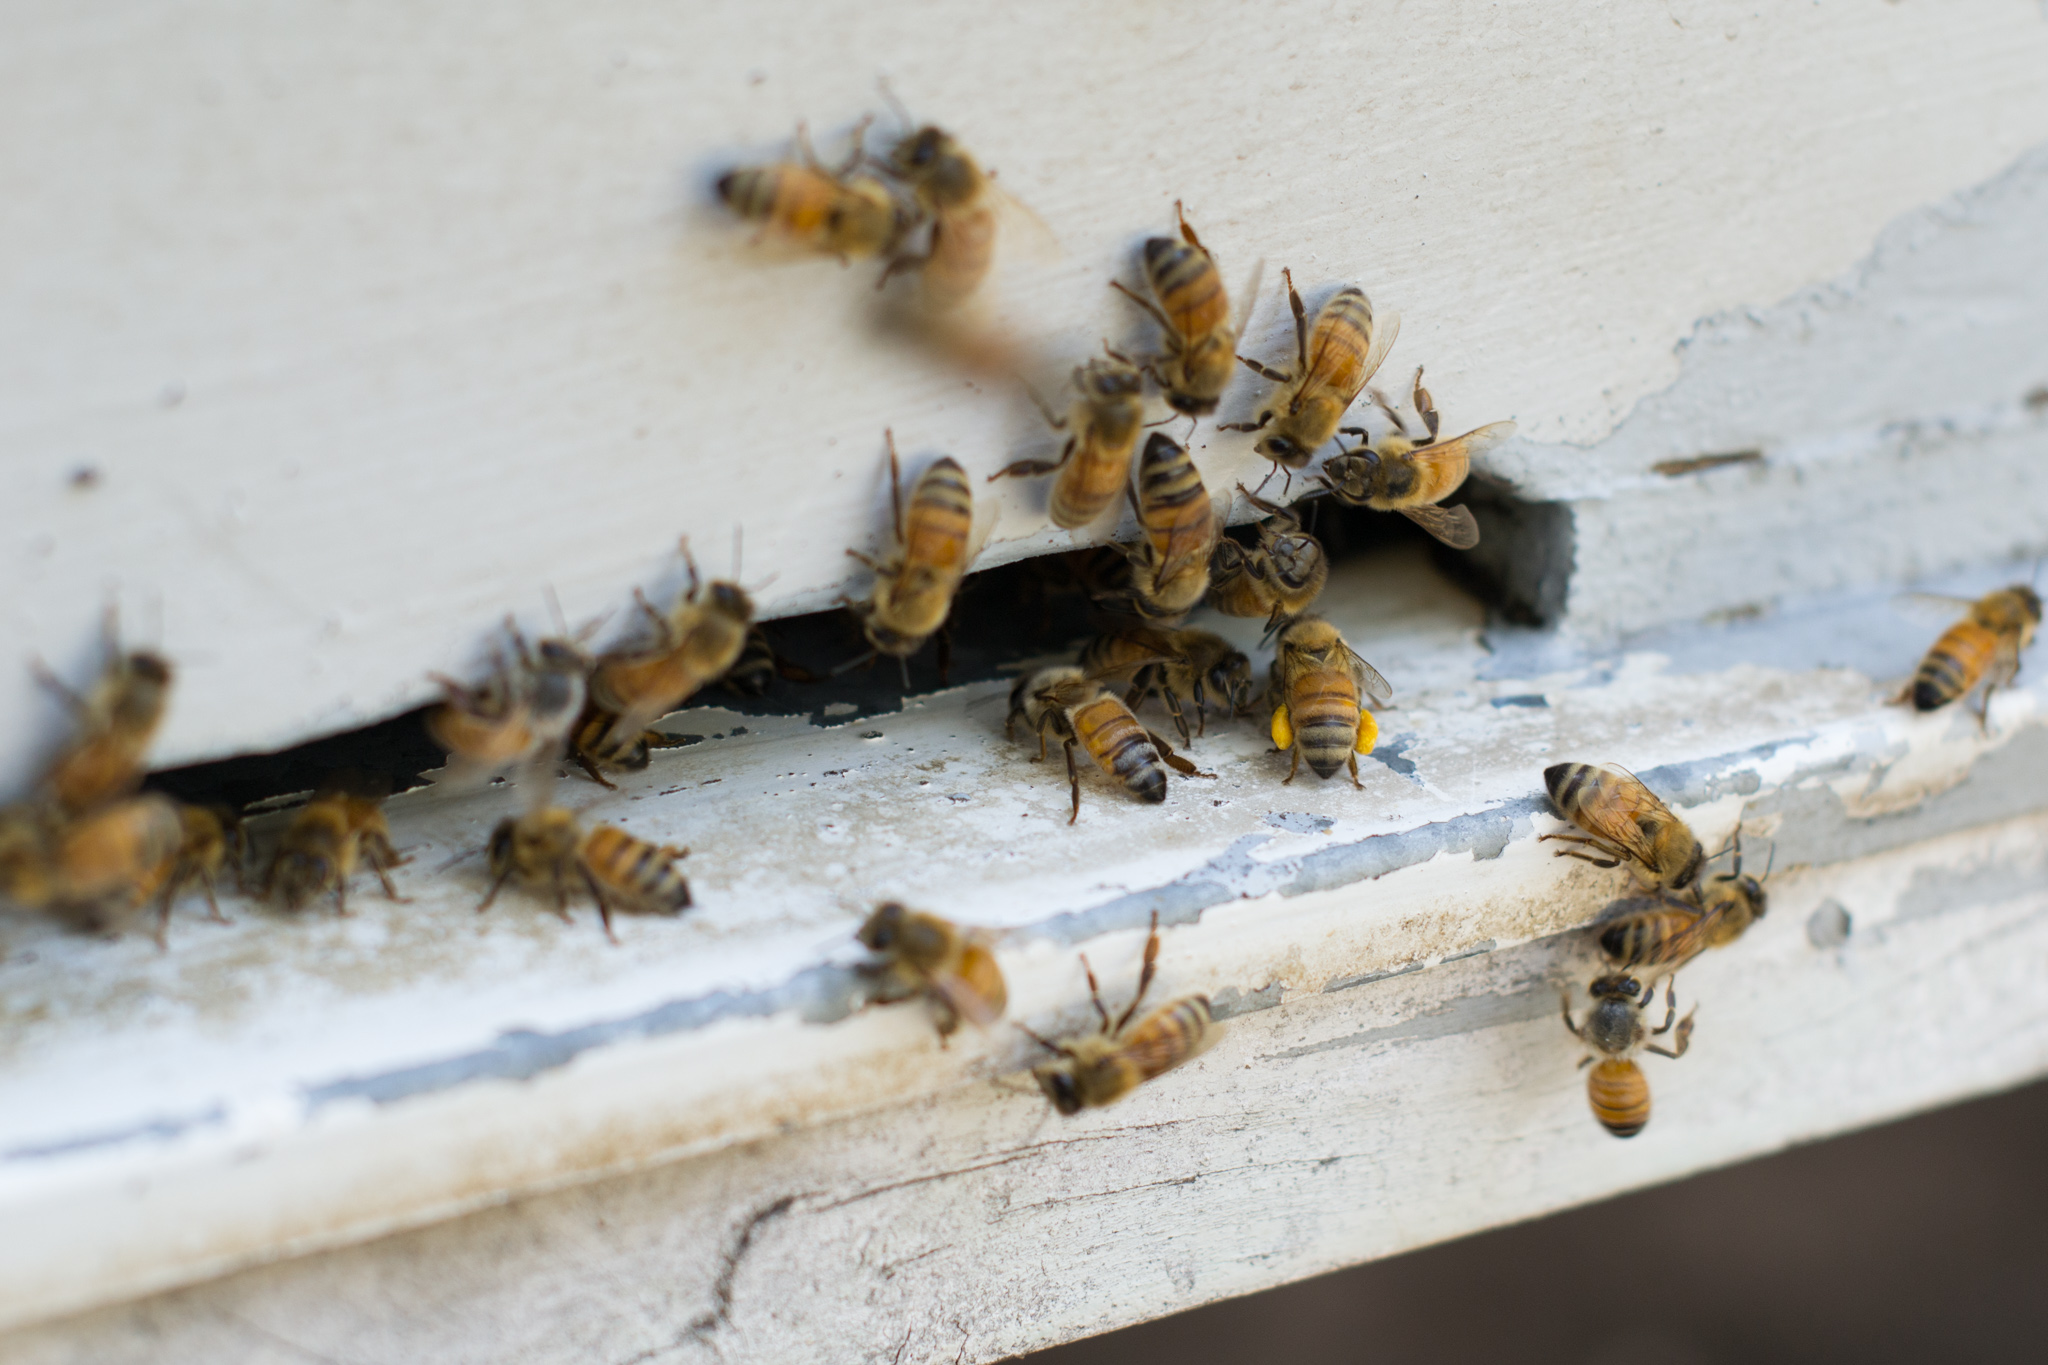 Some of our hard-working girls taking pollen supplies into the hive